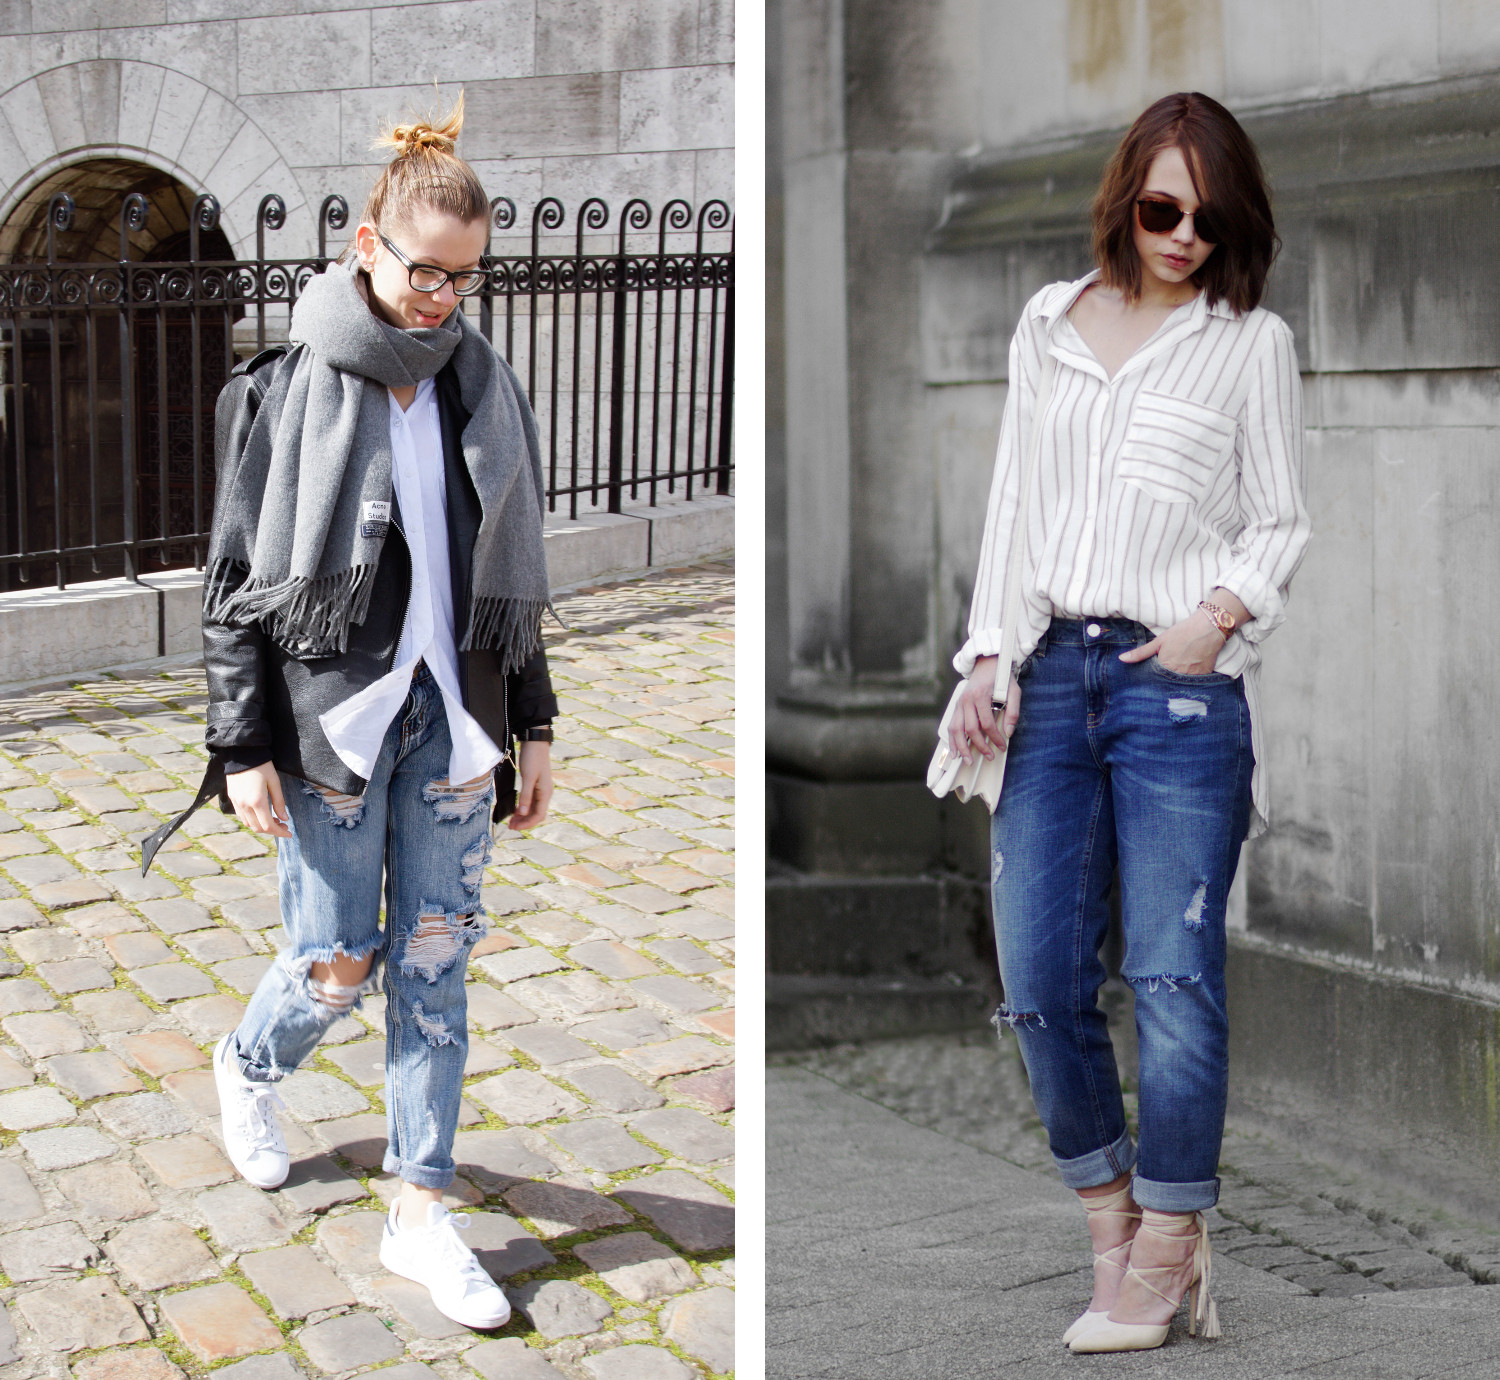 Bezaubernde Nana, bezauberndenana.de, Fashionblog, Denim Lookbook, Denim Trends 2016, Jeans Outfits, Girlfriend Jeans, Fashion Equals Science, fashionequalsscience.com